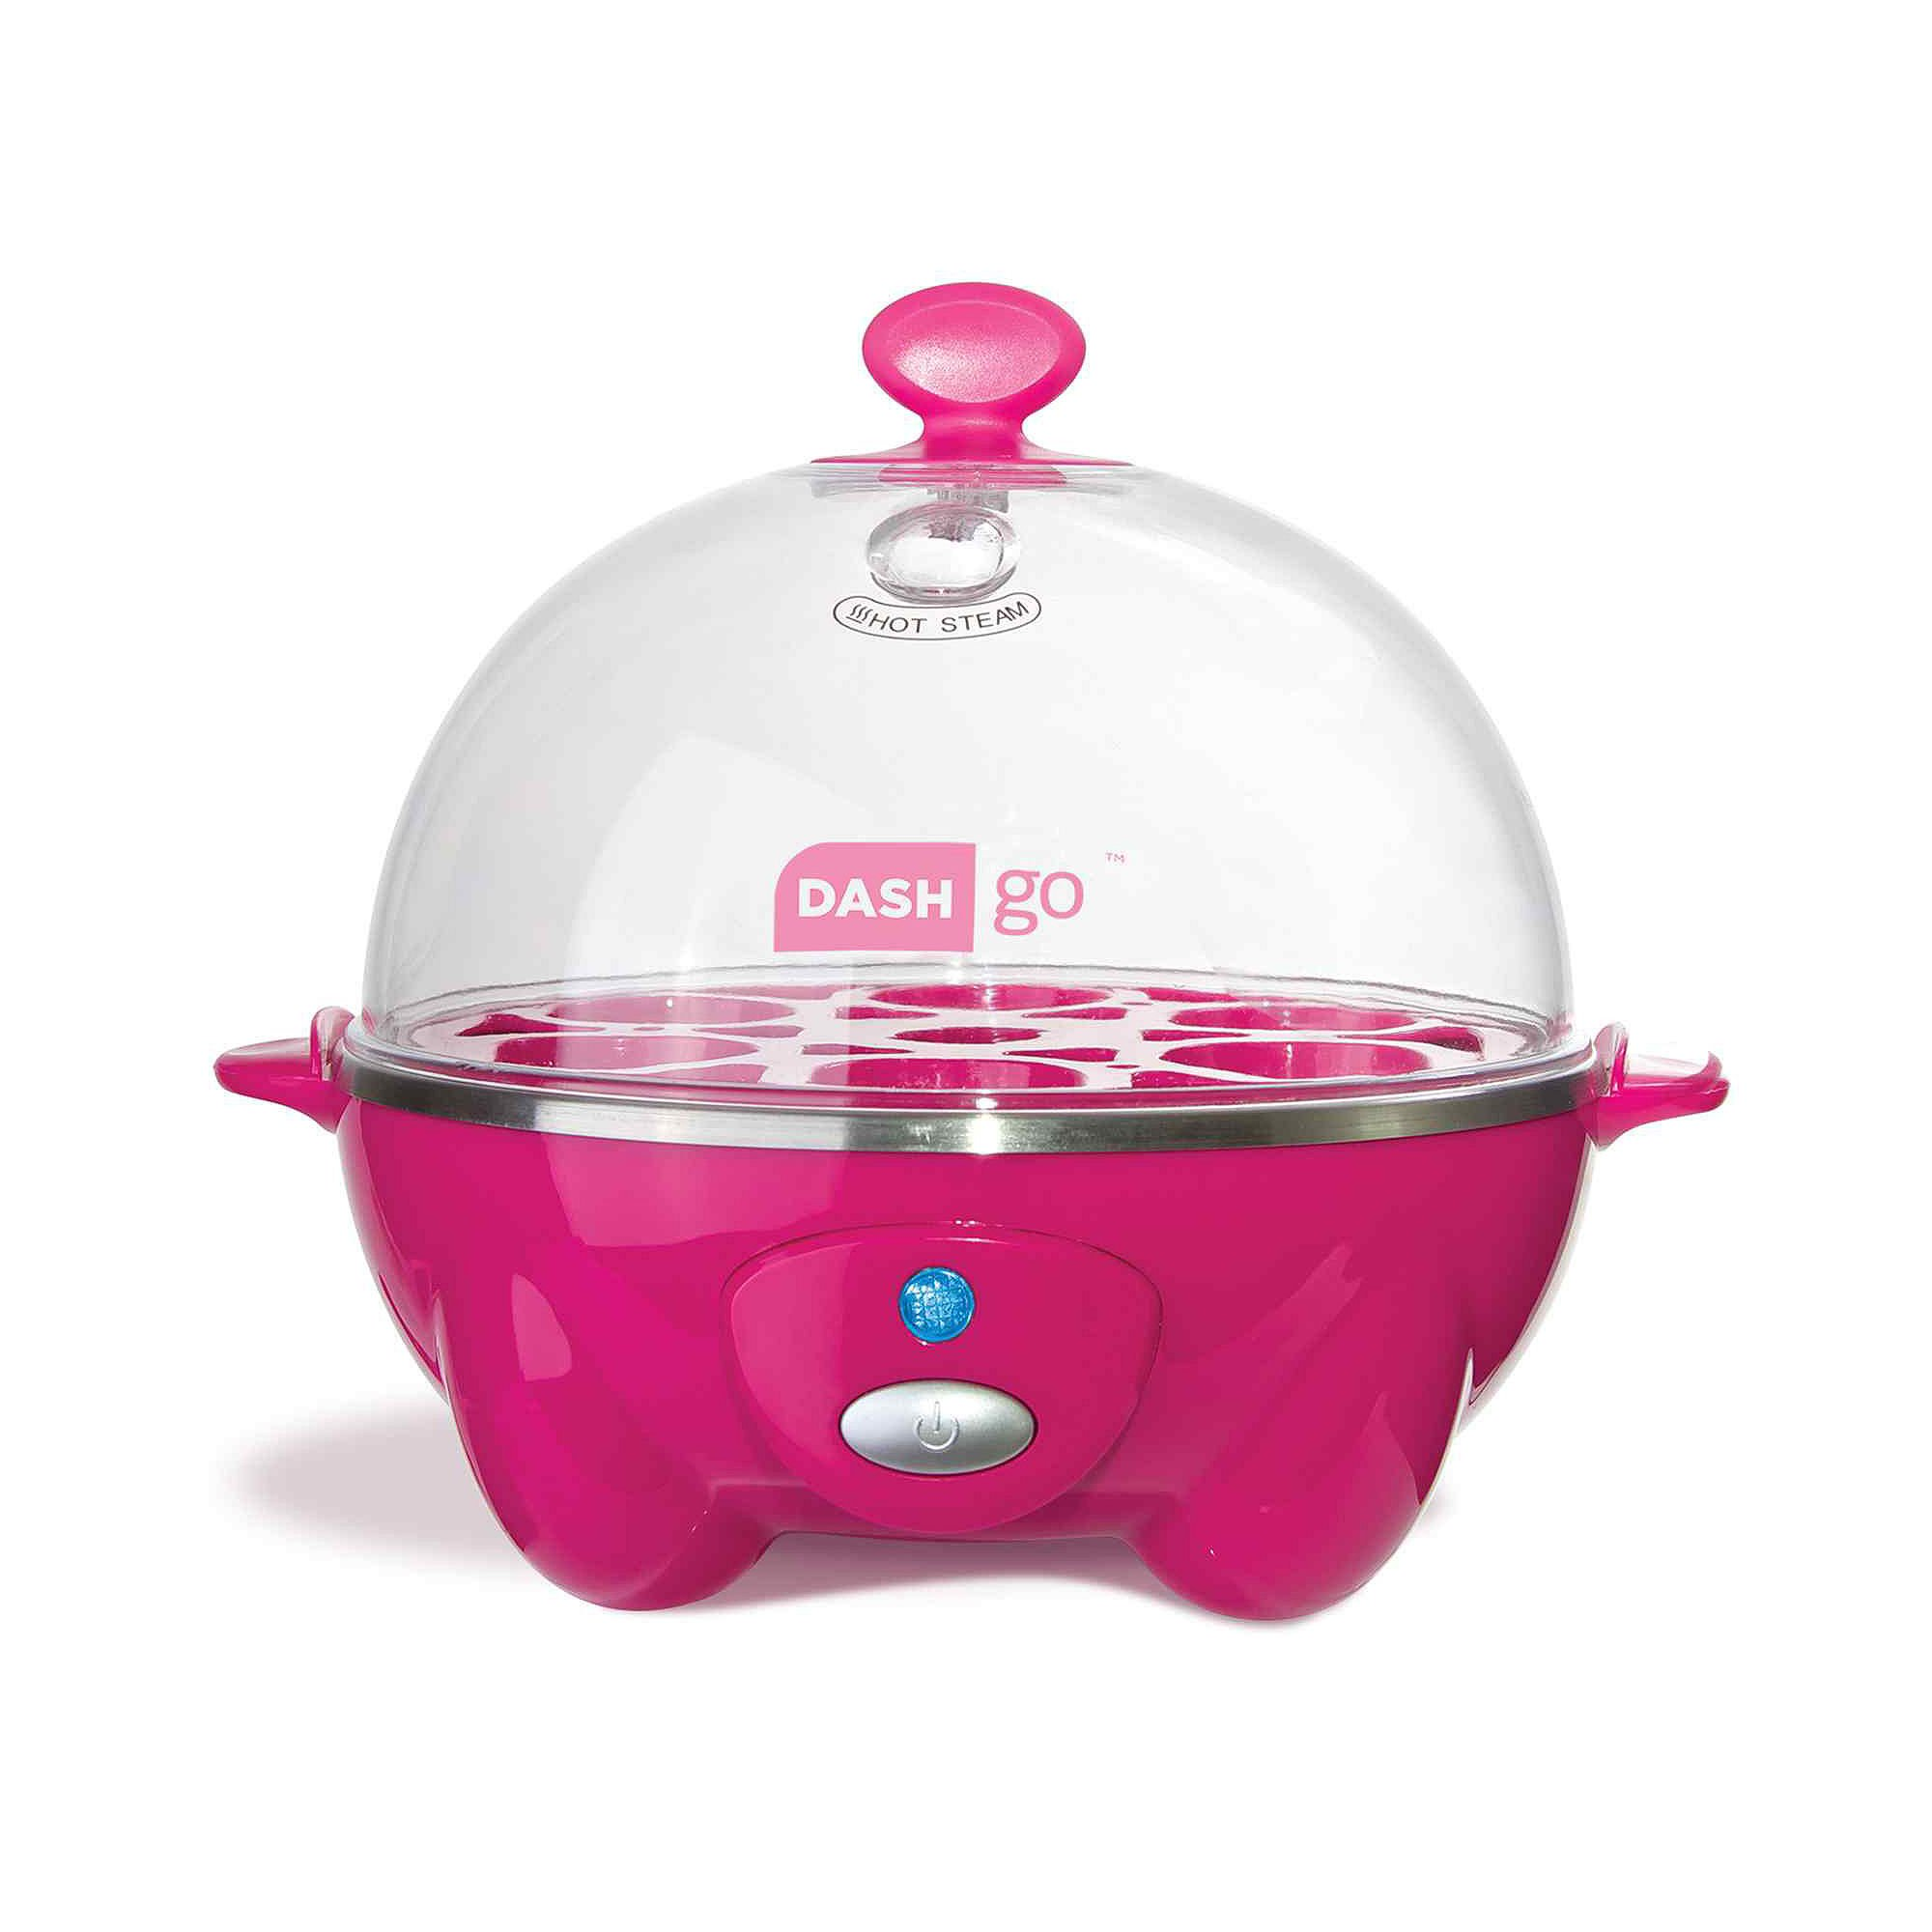 Dash Rapid Egg Cooker - Pink by DASH